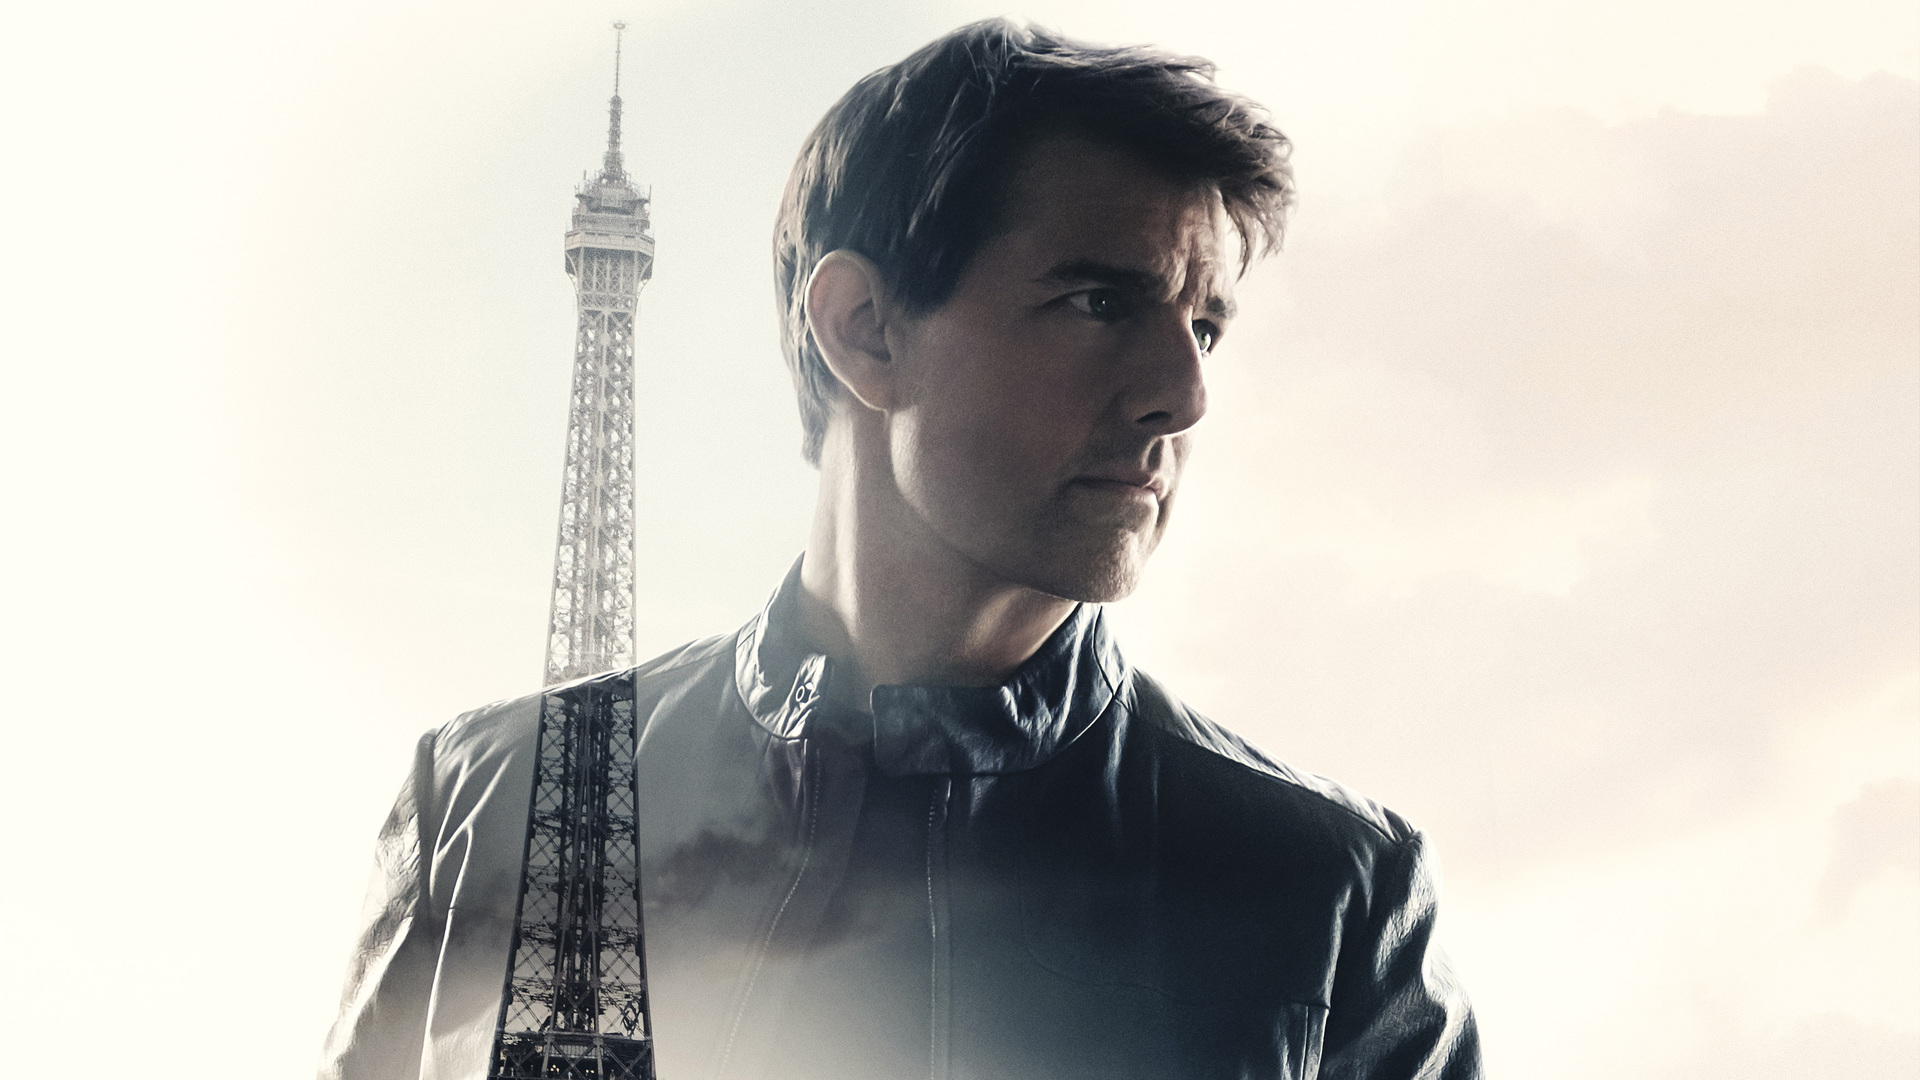 1920x1080 Tom Cruise Mission Impossible Fallout 4k Laptop Full Hd